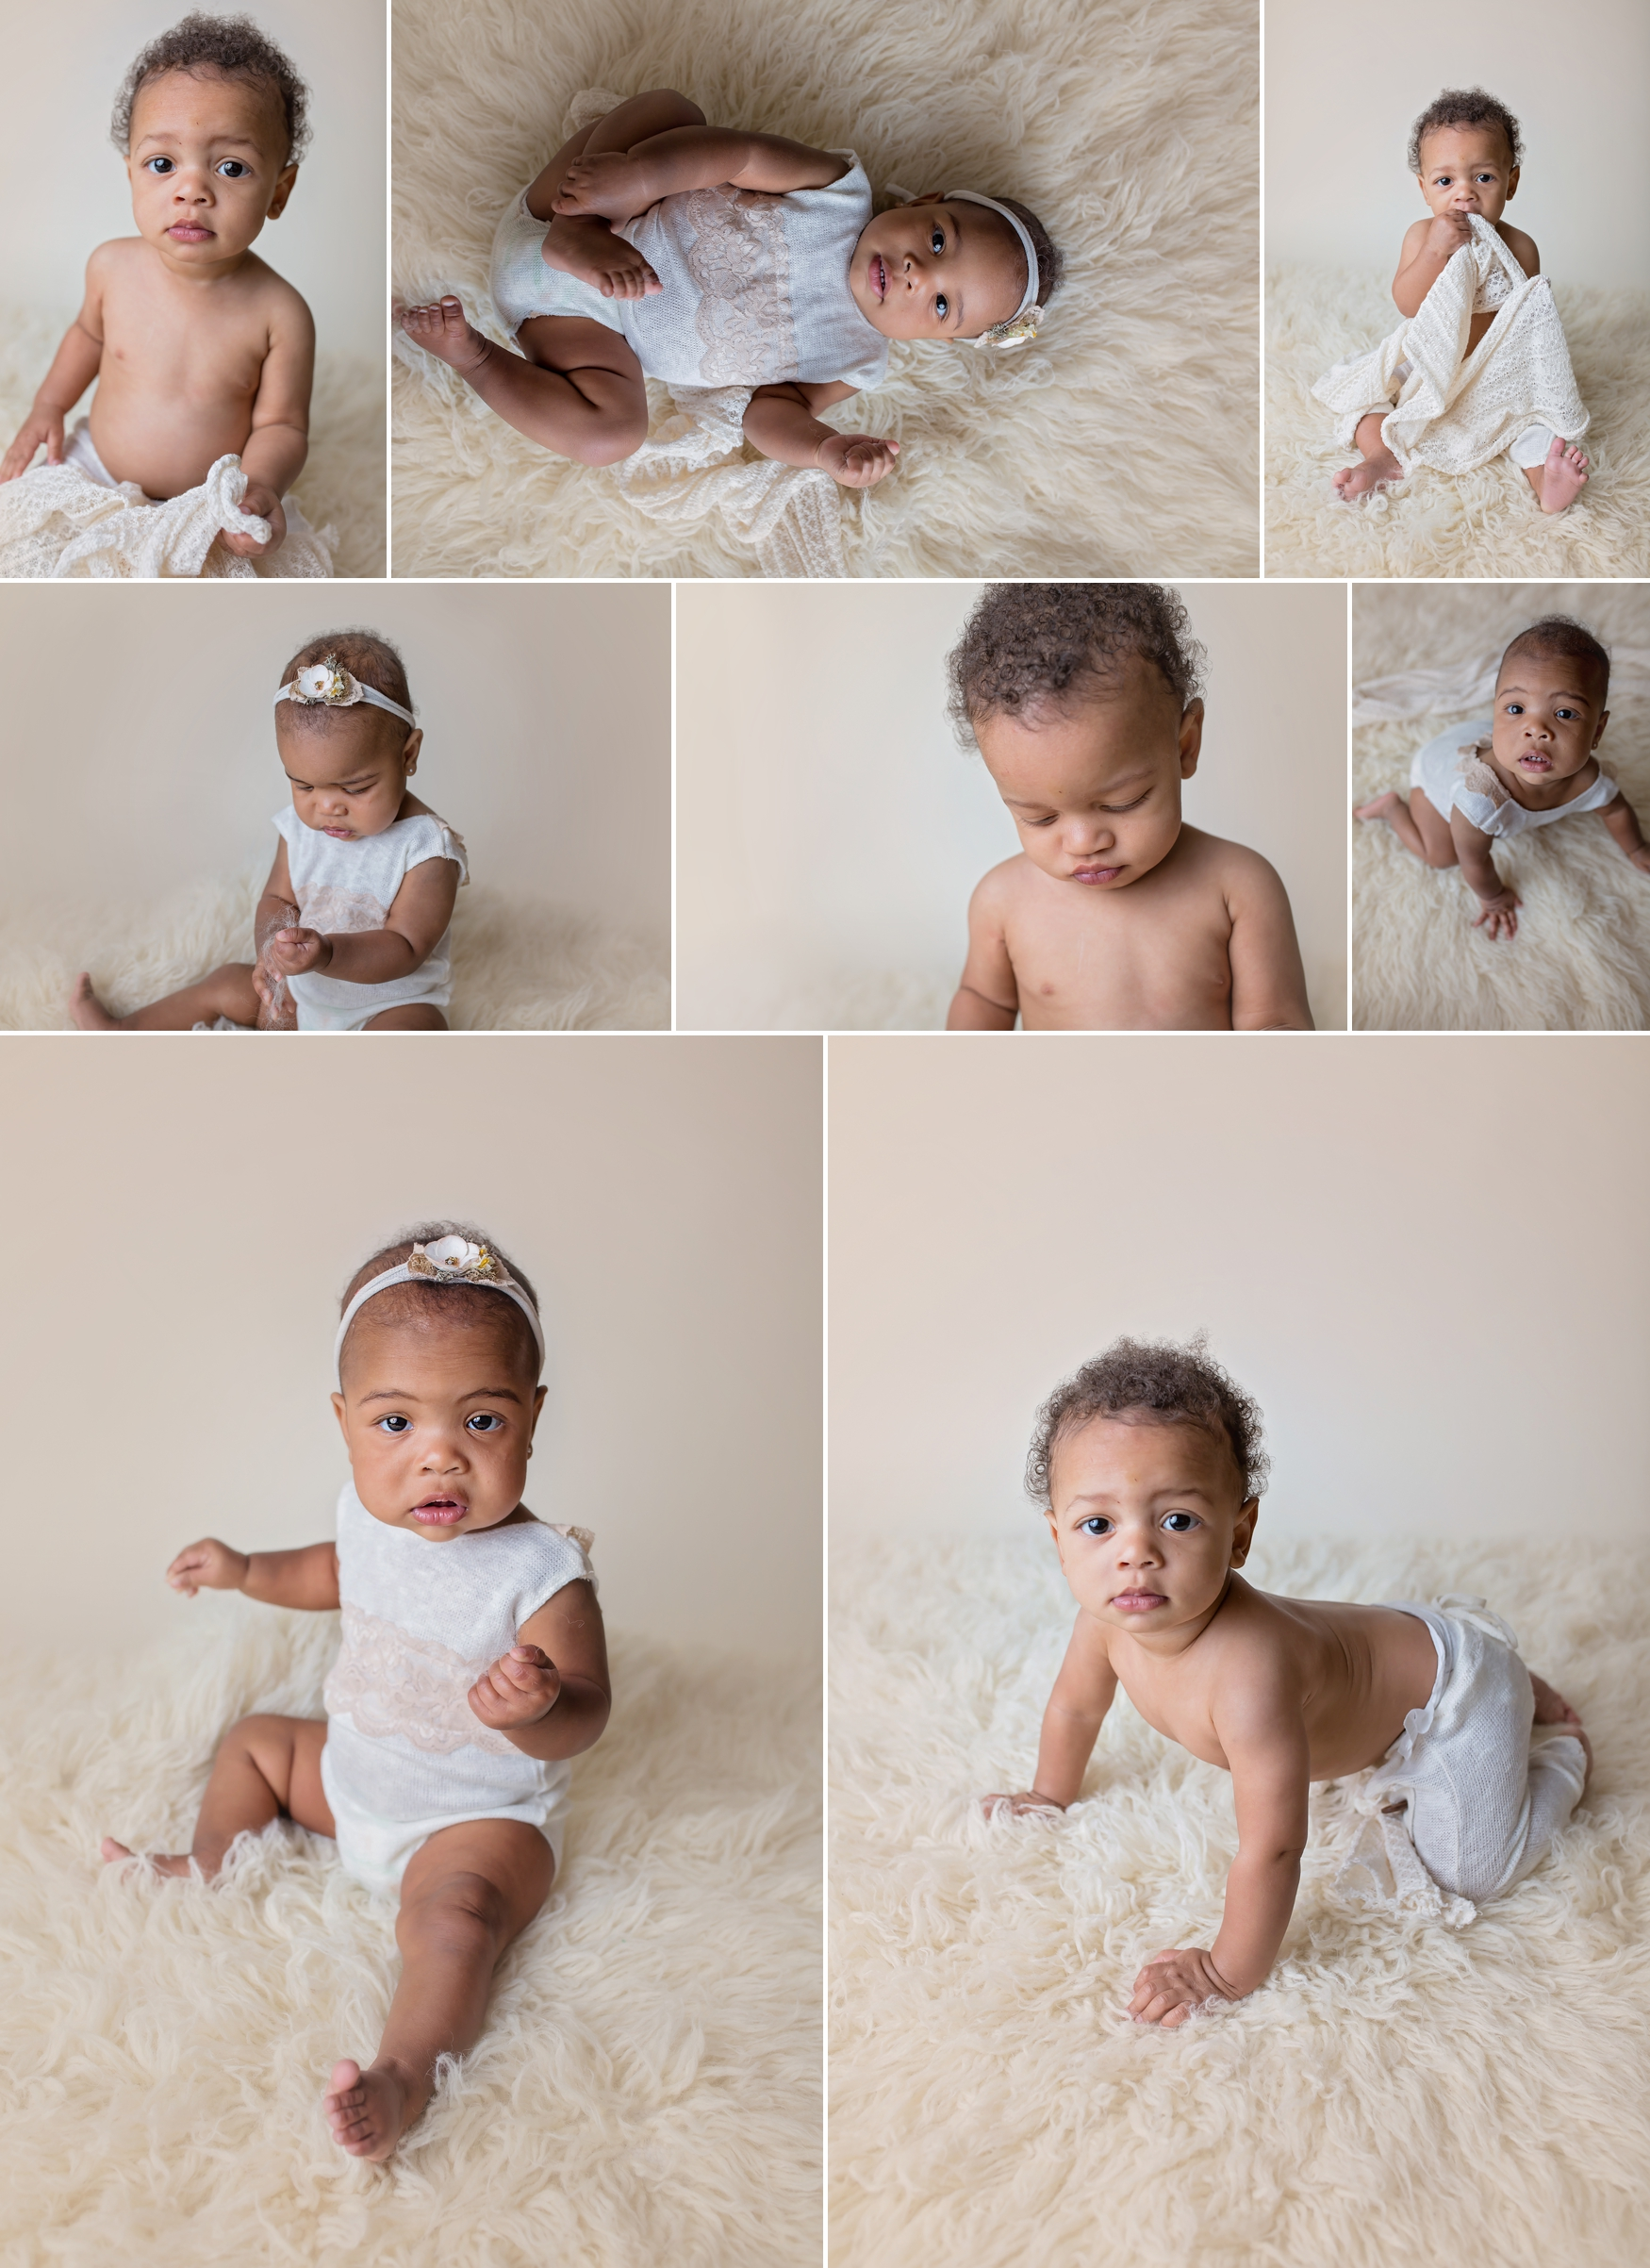 Twins crawl on white flokati rug during 7 month session.